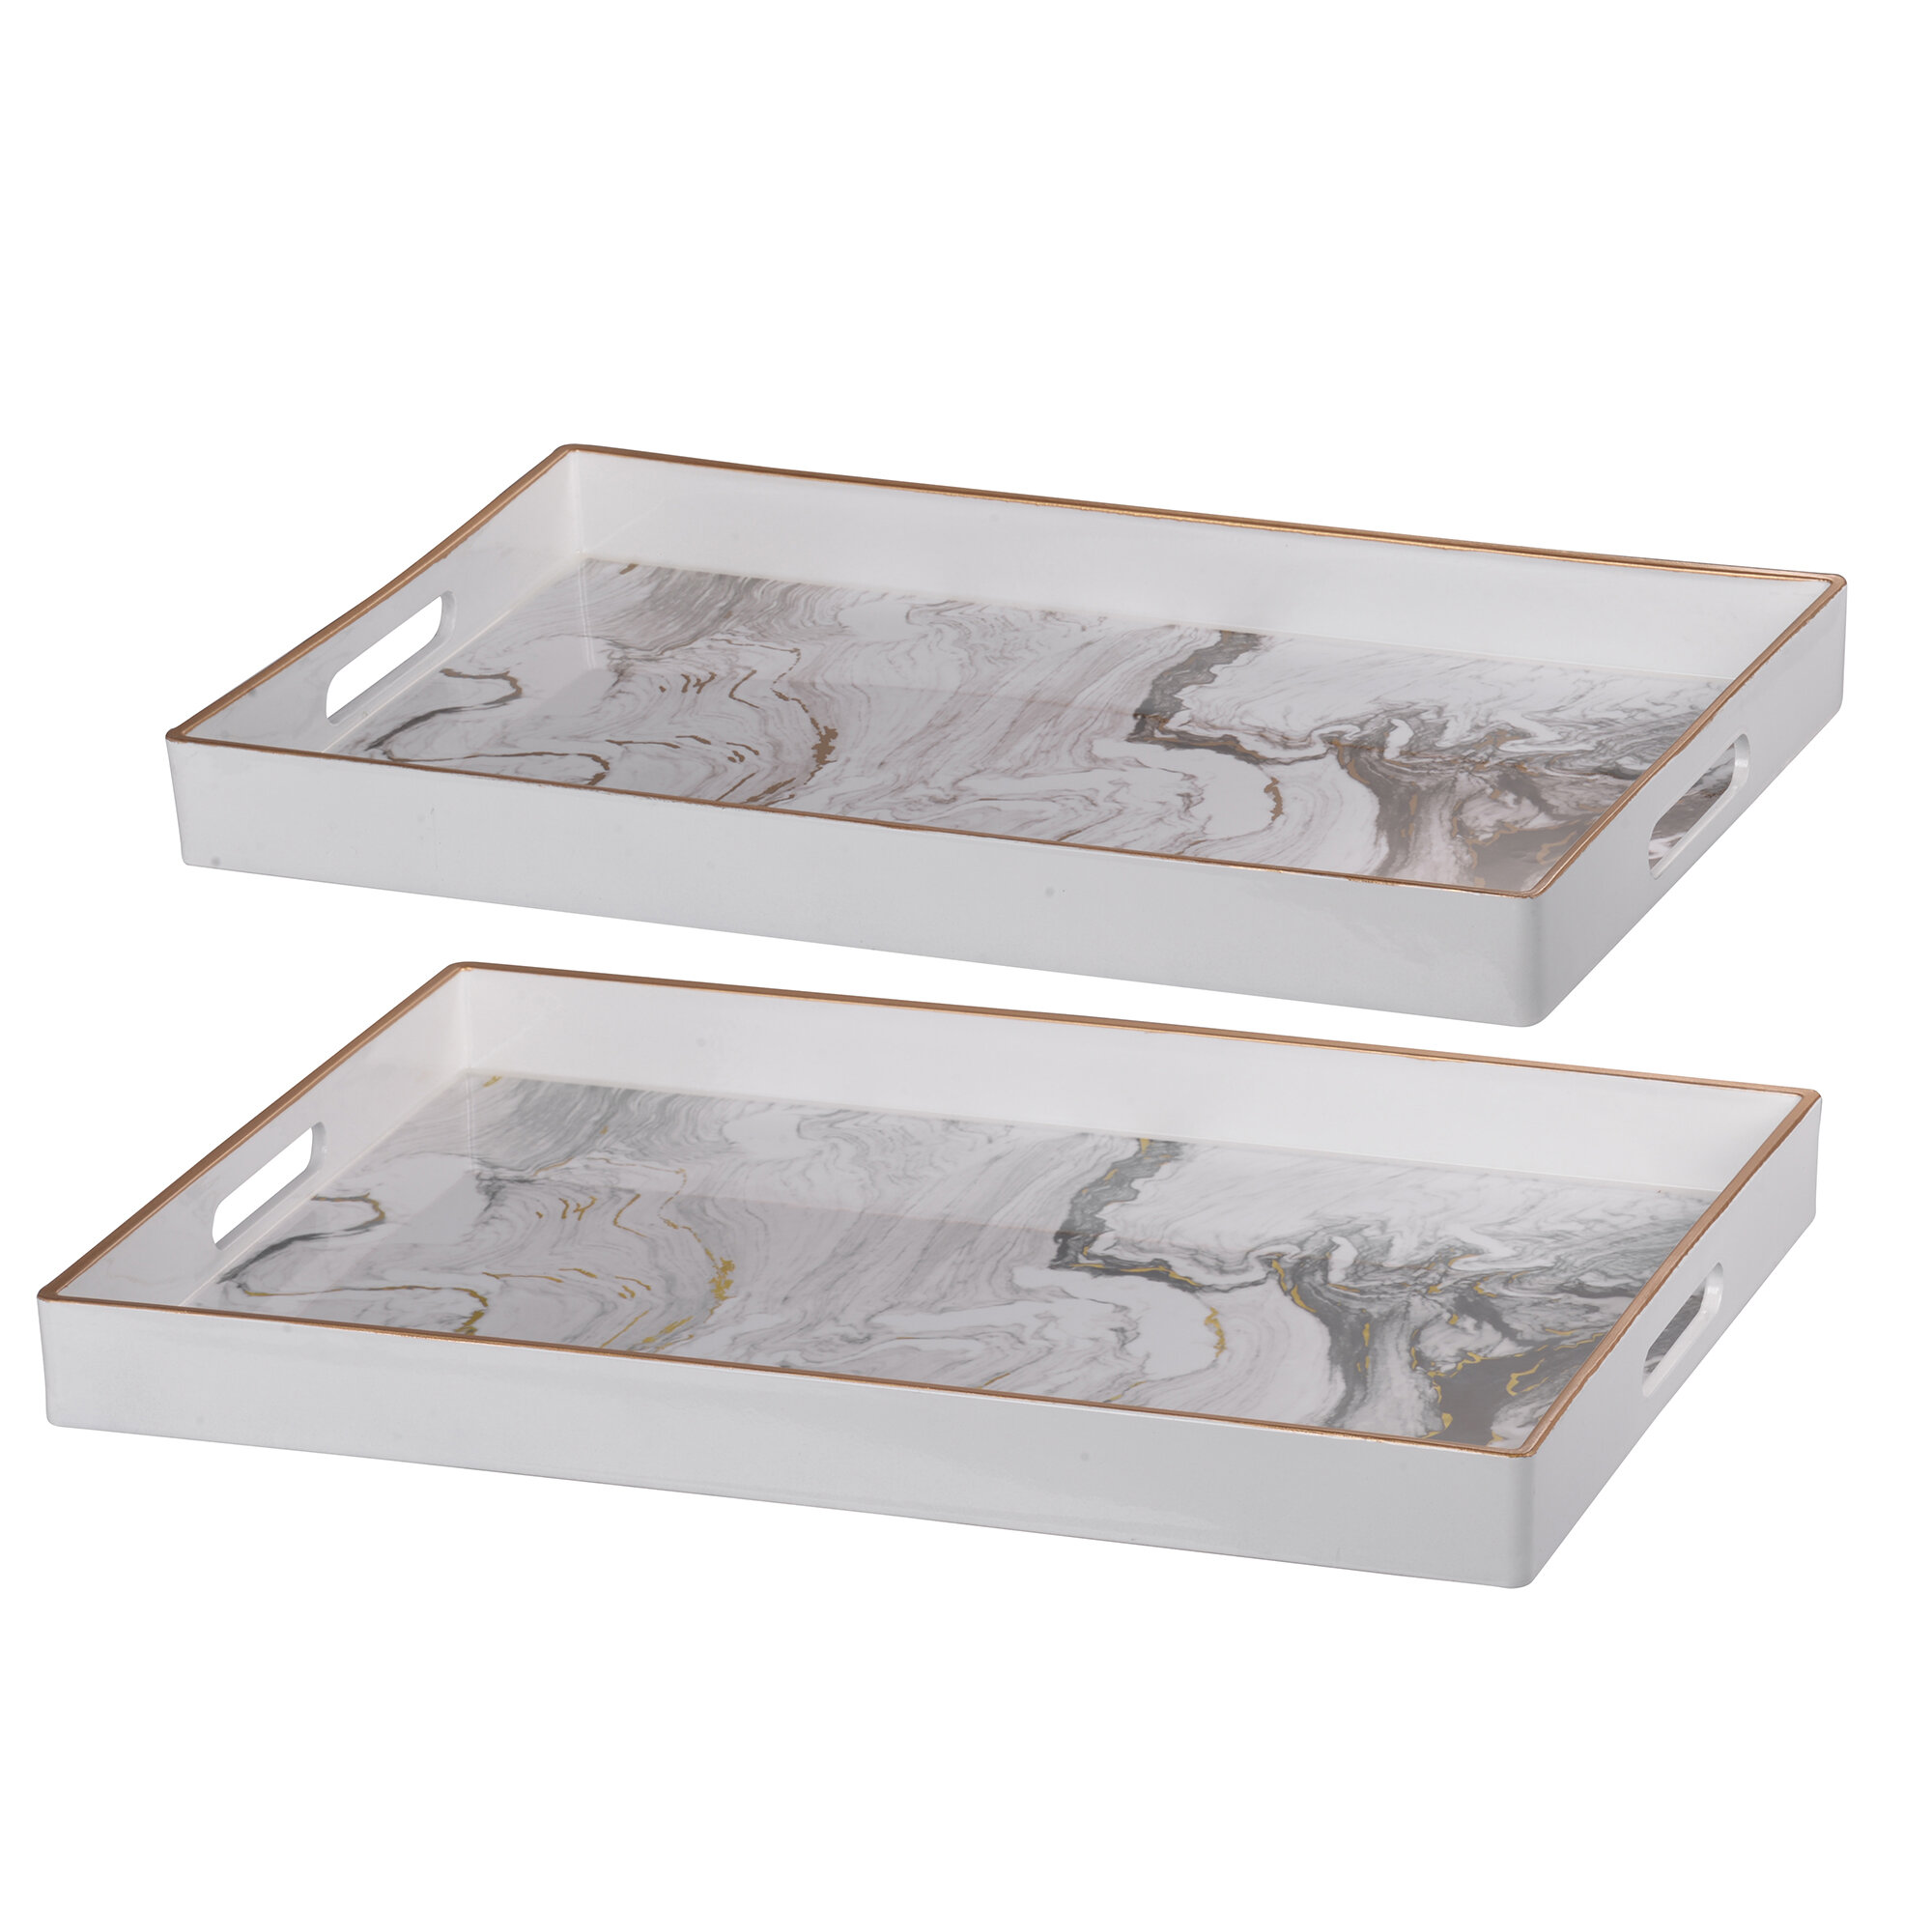 Modern Serving Decorative Trays Allmodern